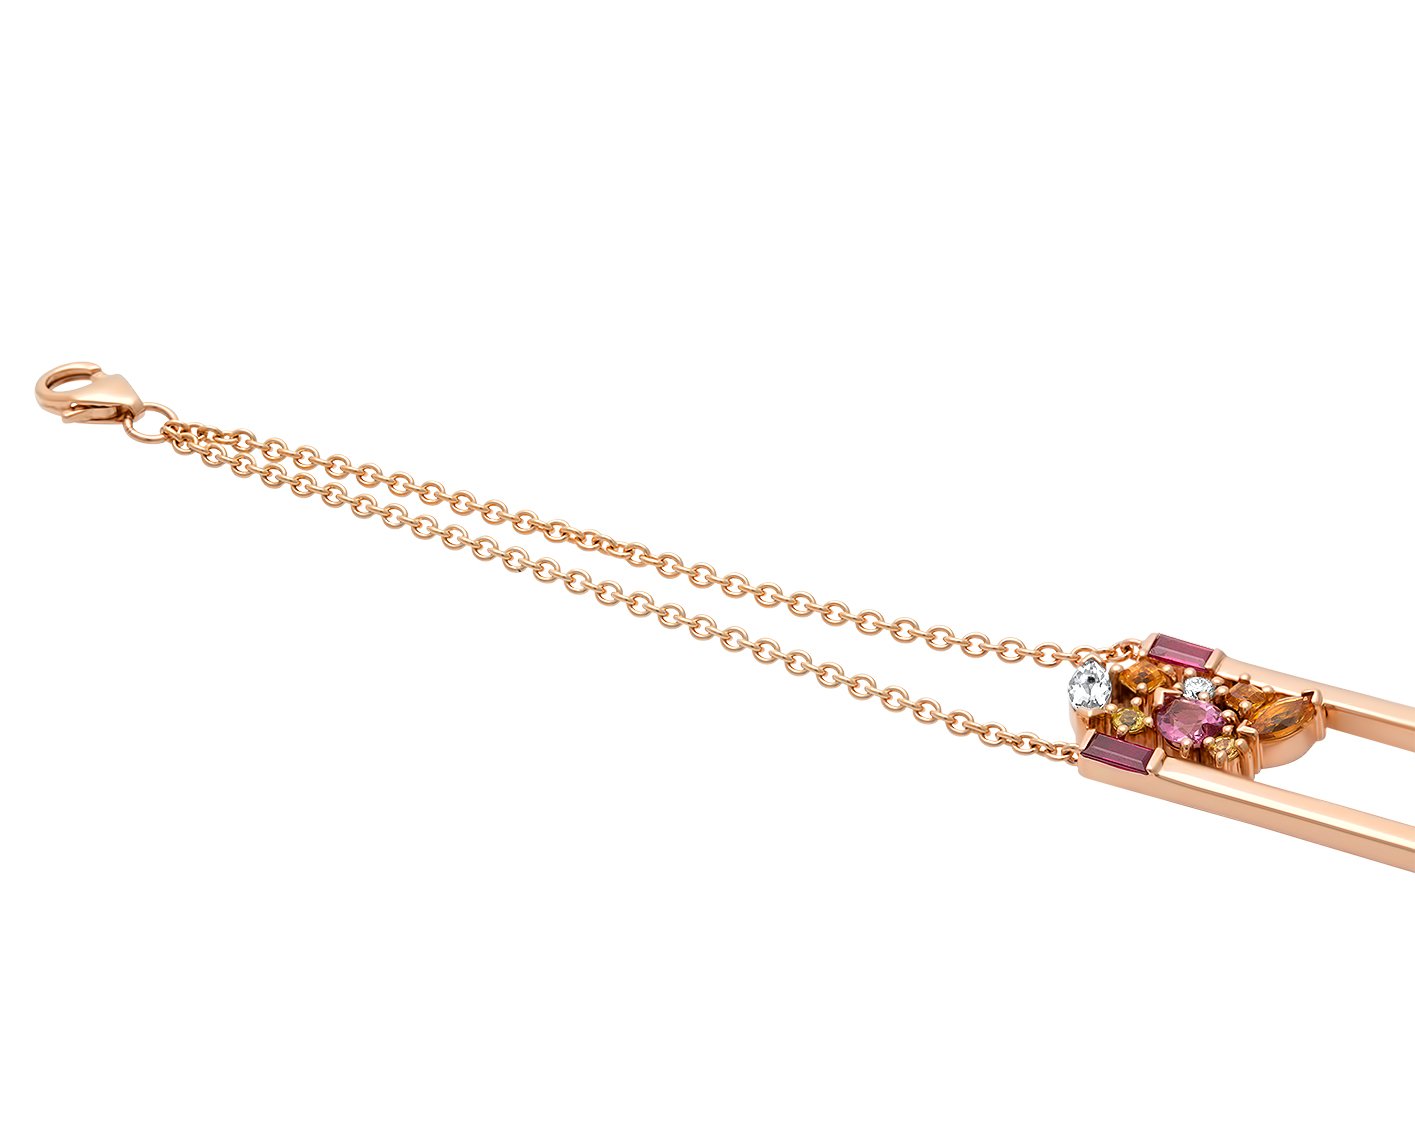 Sunset Attraction Bracelet by Marmari on curated-crowd.com